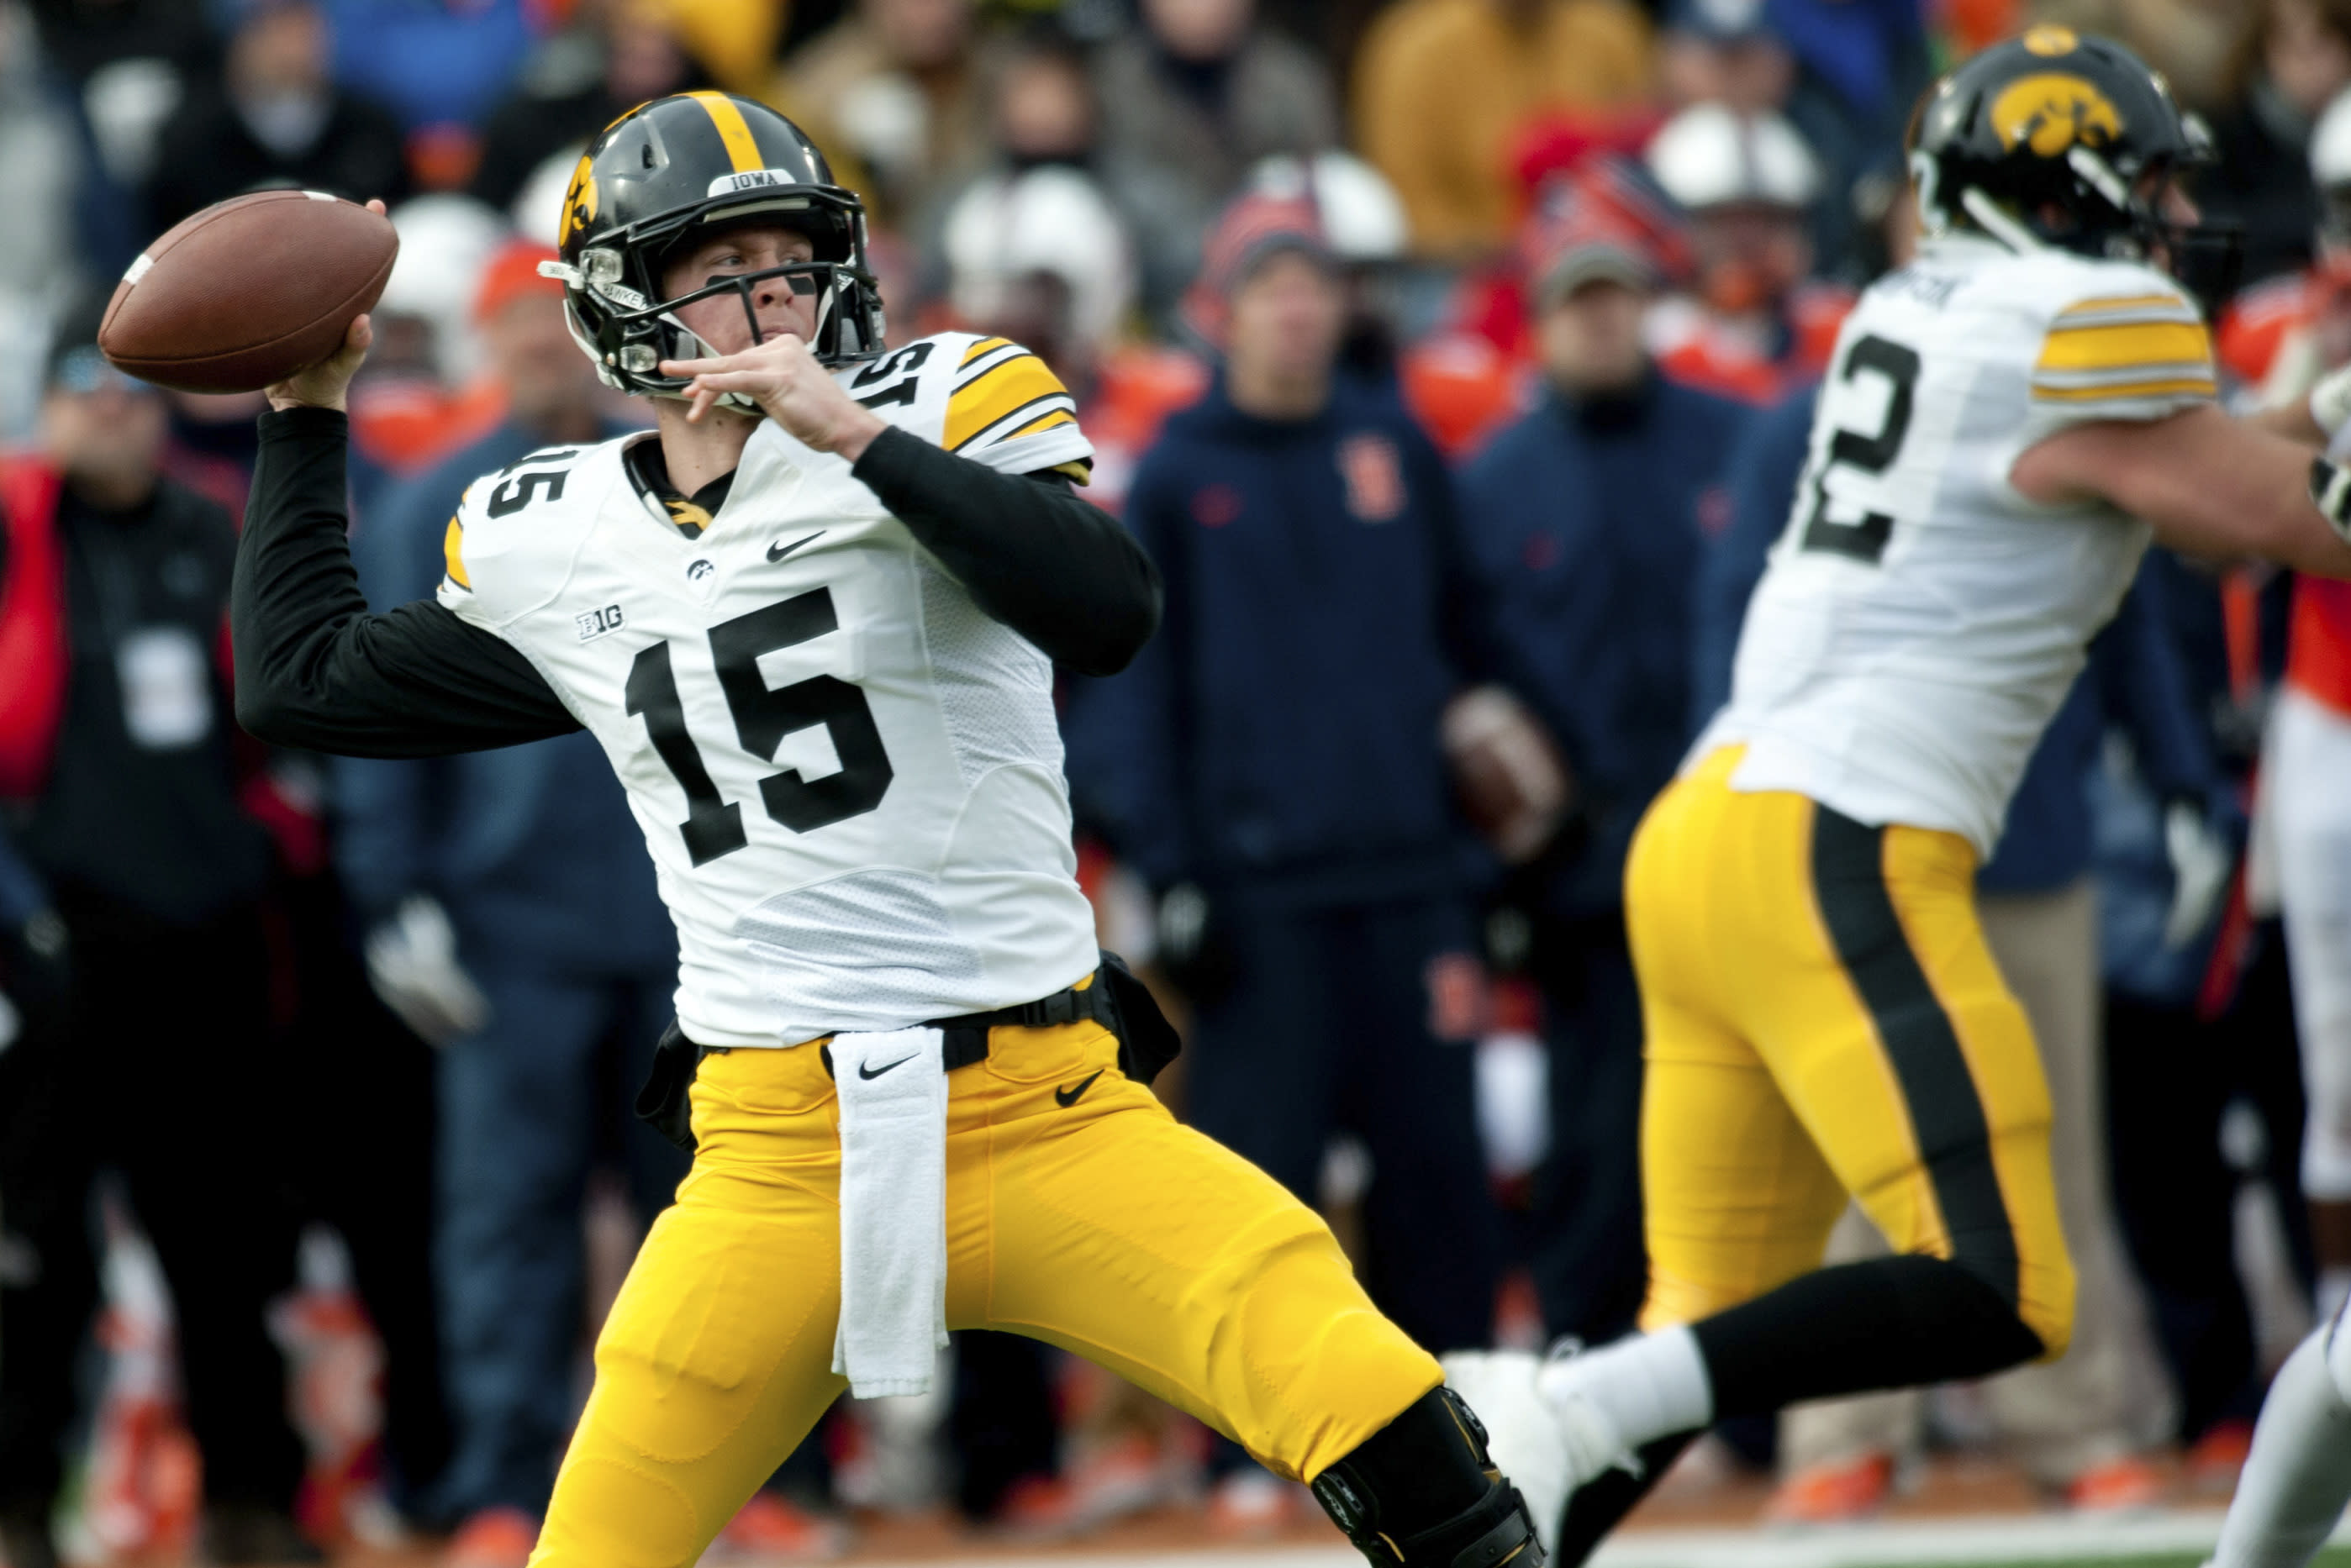 Reports: Ex-Iowa QB Jake Rudock could be headed to Michigan